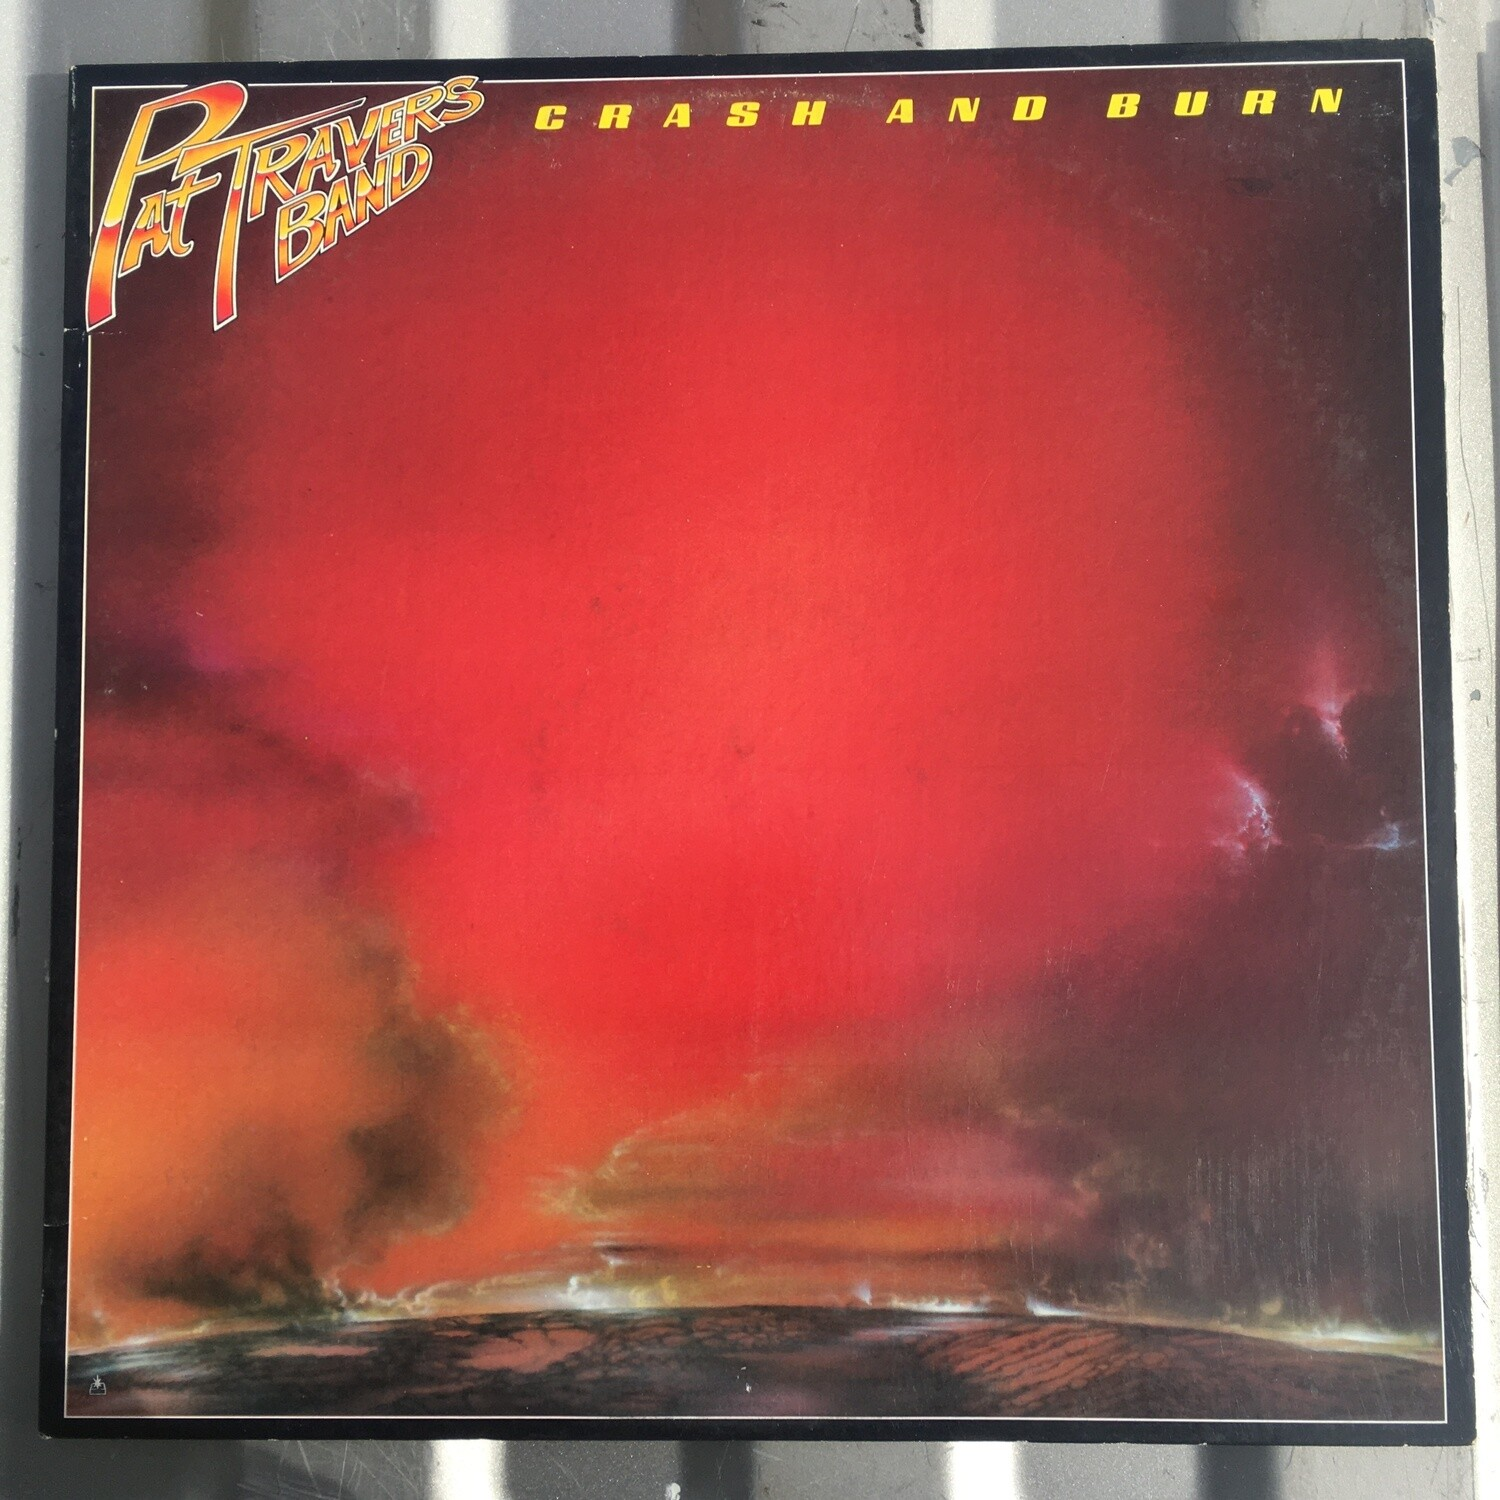 Pat Travers Band ~ Crash and Burn ~ (USED) Vinyl LP (VG+)